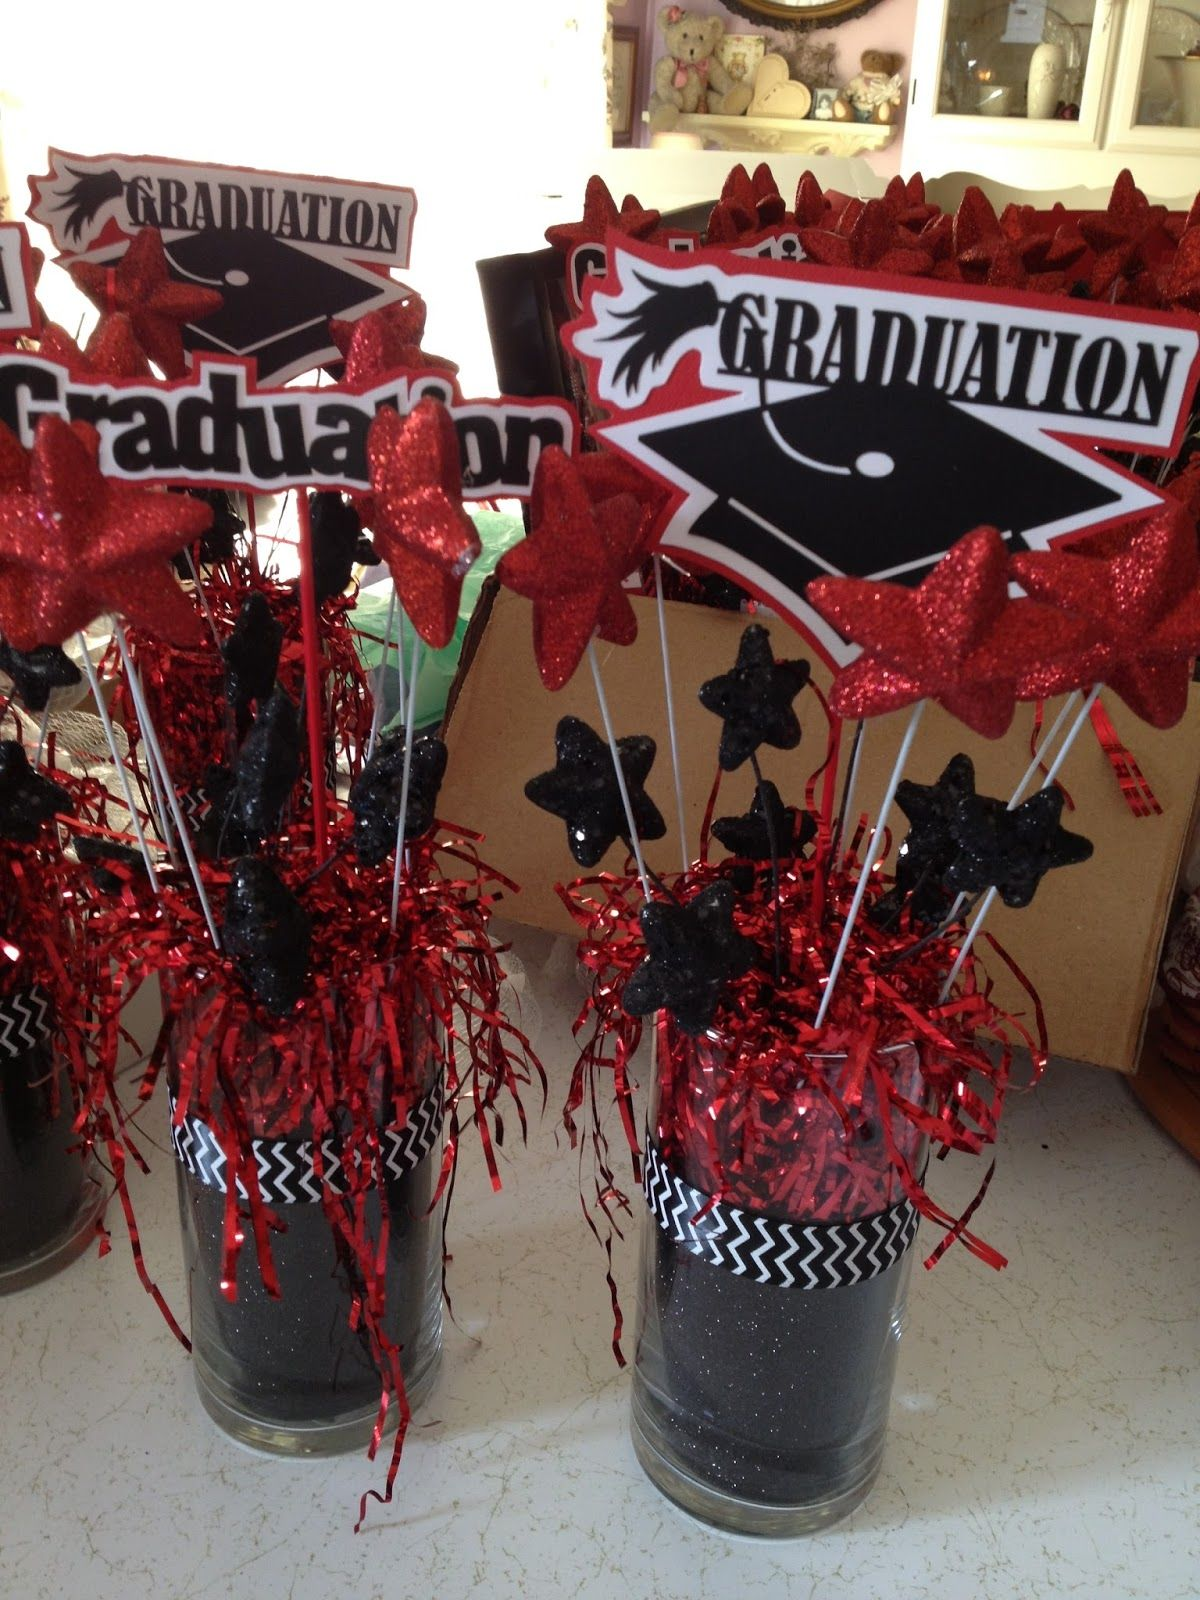 Graduation Centerpiece Ideas To Make Google Search Graduation